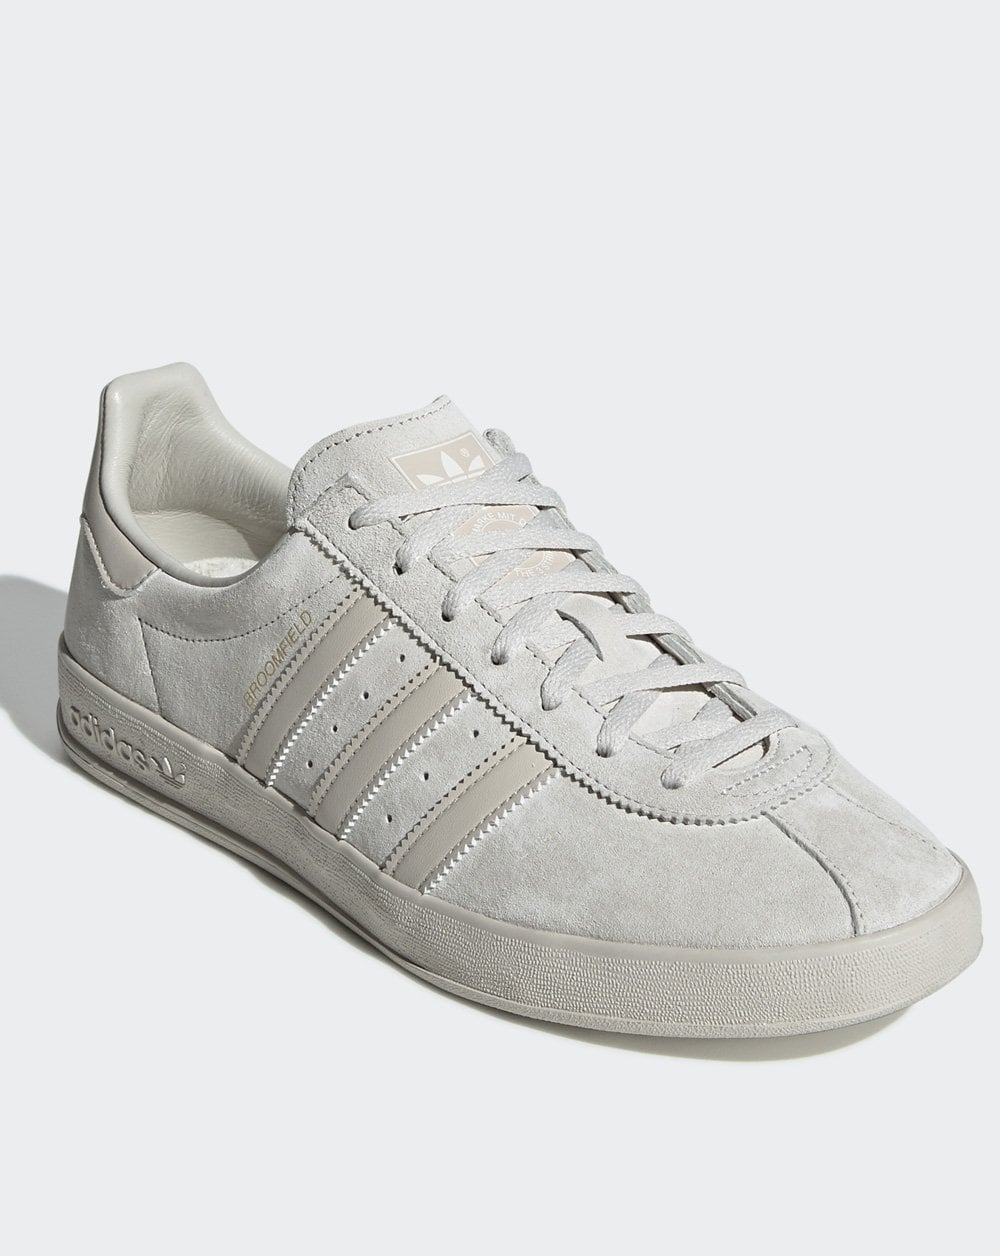 The adidas AS700 Trainer From The 1980s